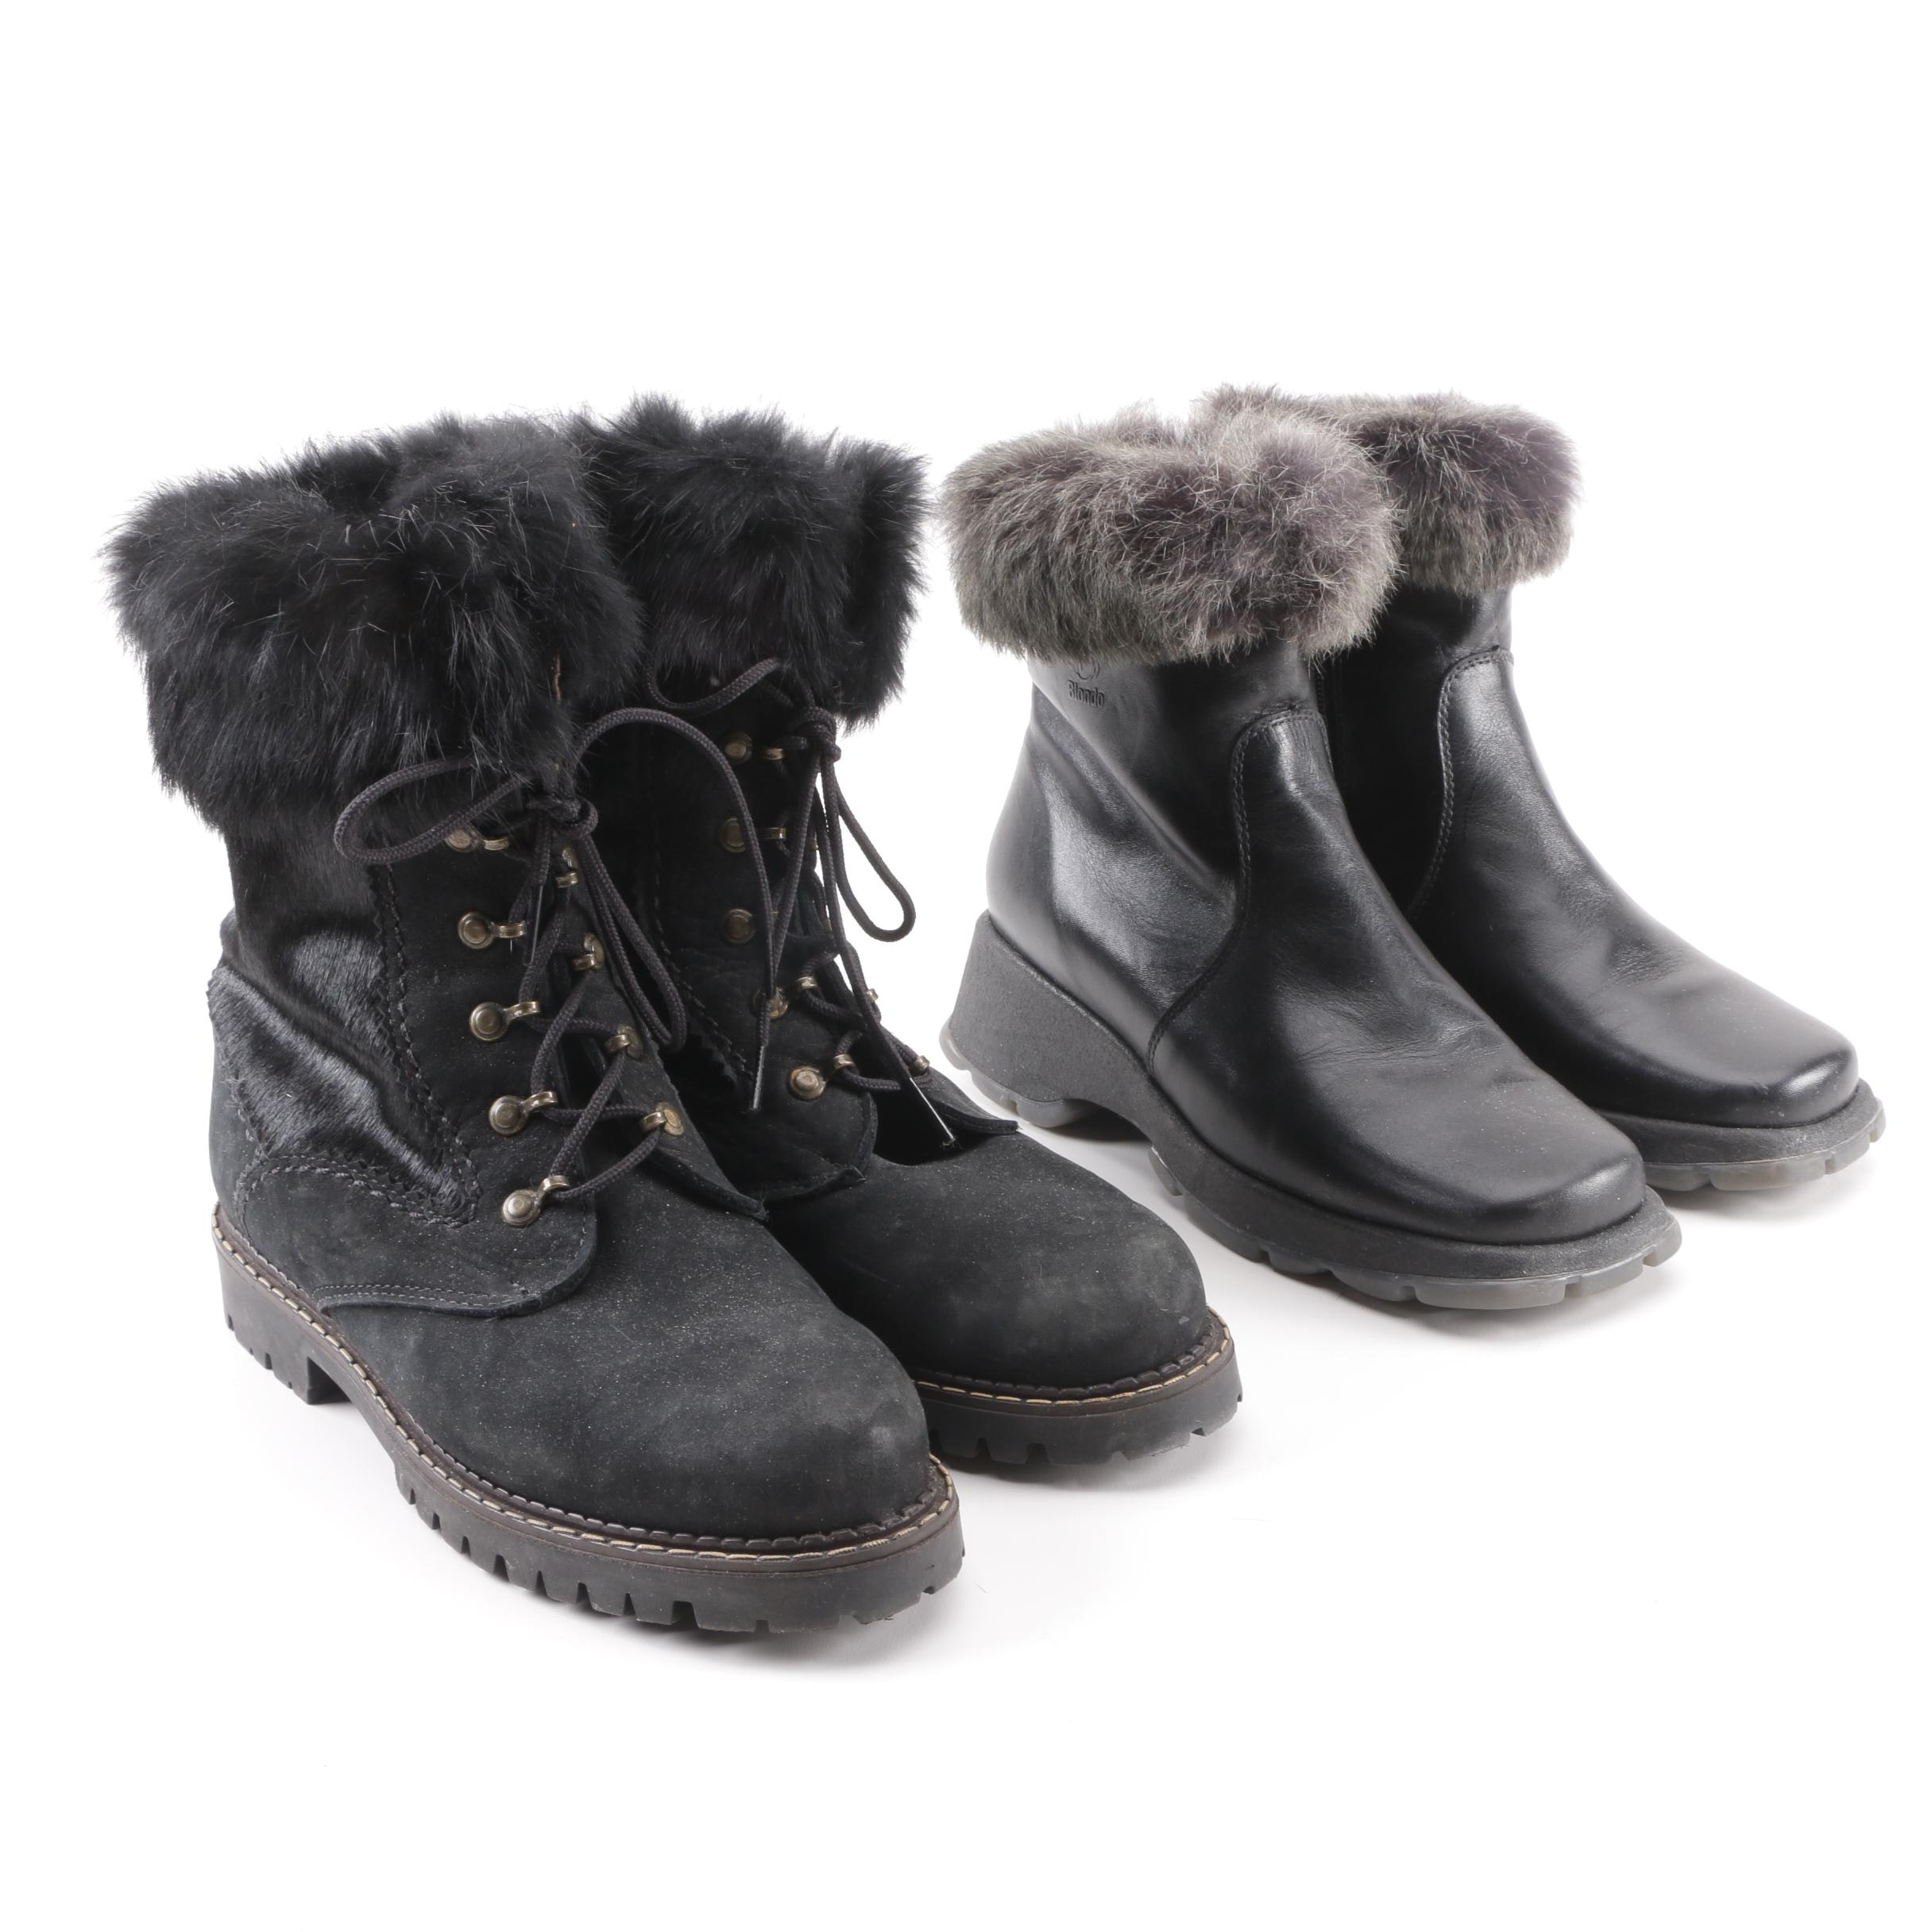 Women's Sorel and Blondo Rabbit Fur-Lined Snow Boots